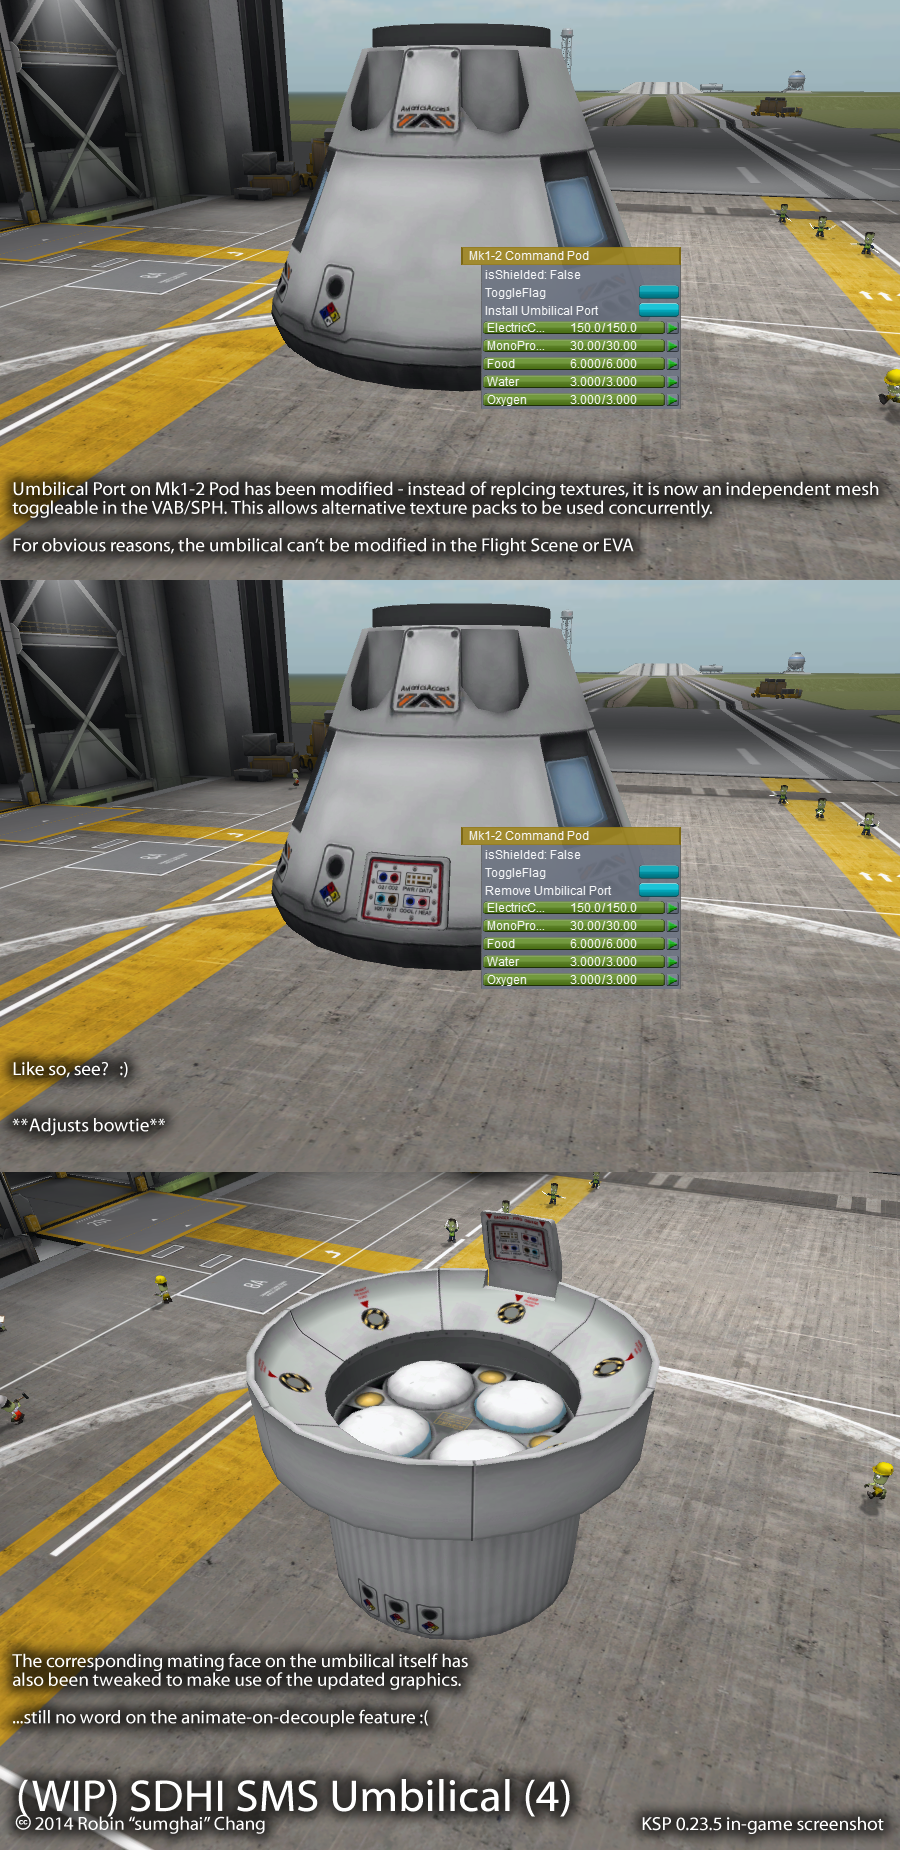 ksp_sdhi_sms_umbilical_wip_9_july_2014_by_sumghai-d7pumj3.png